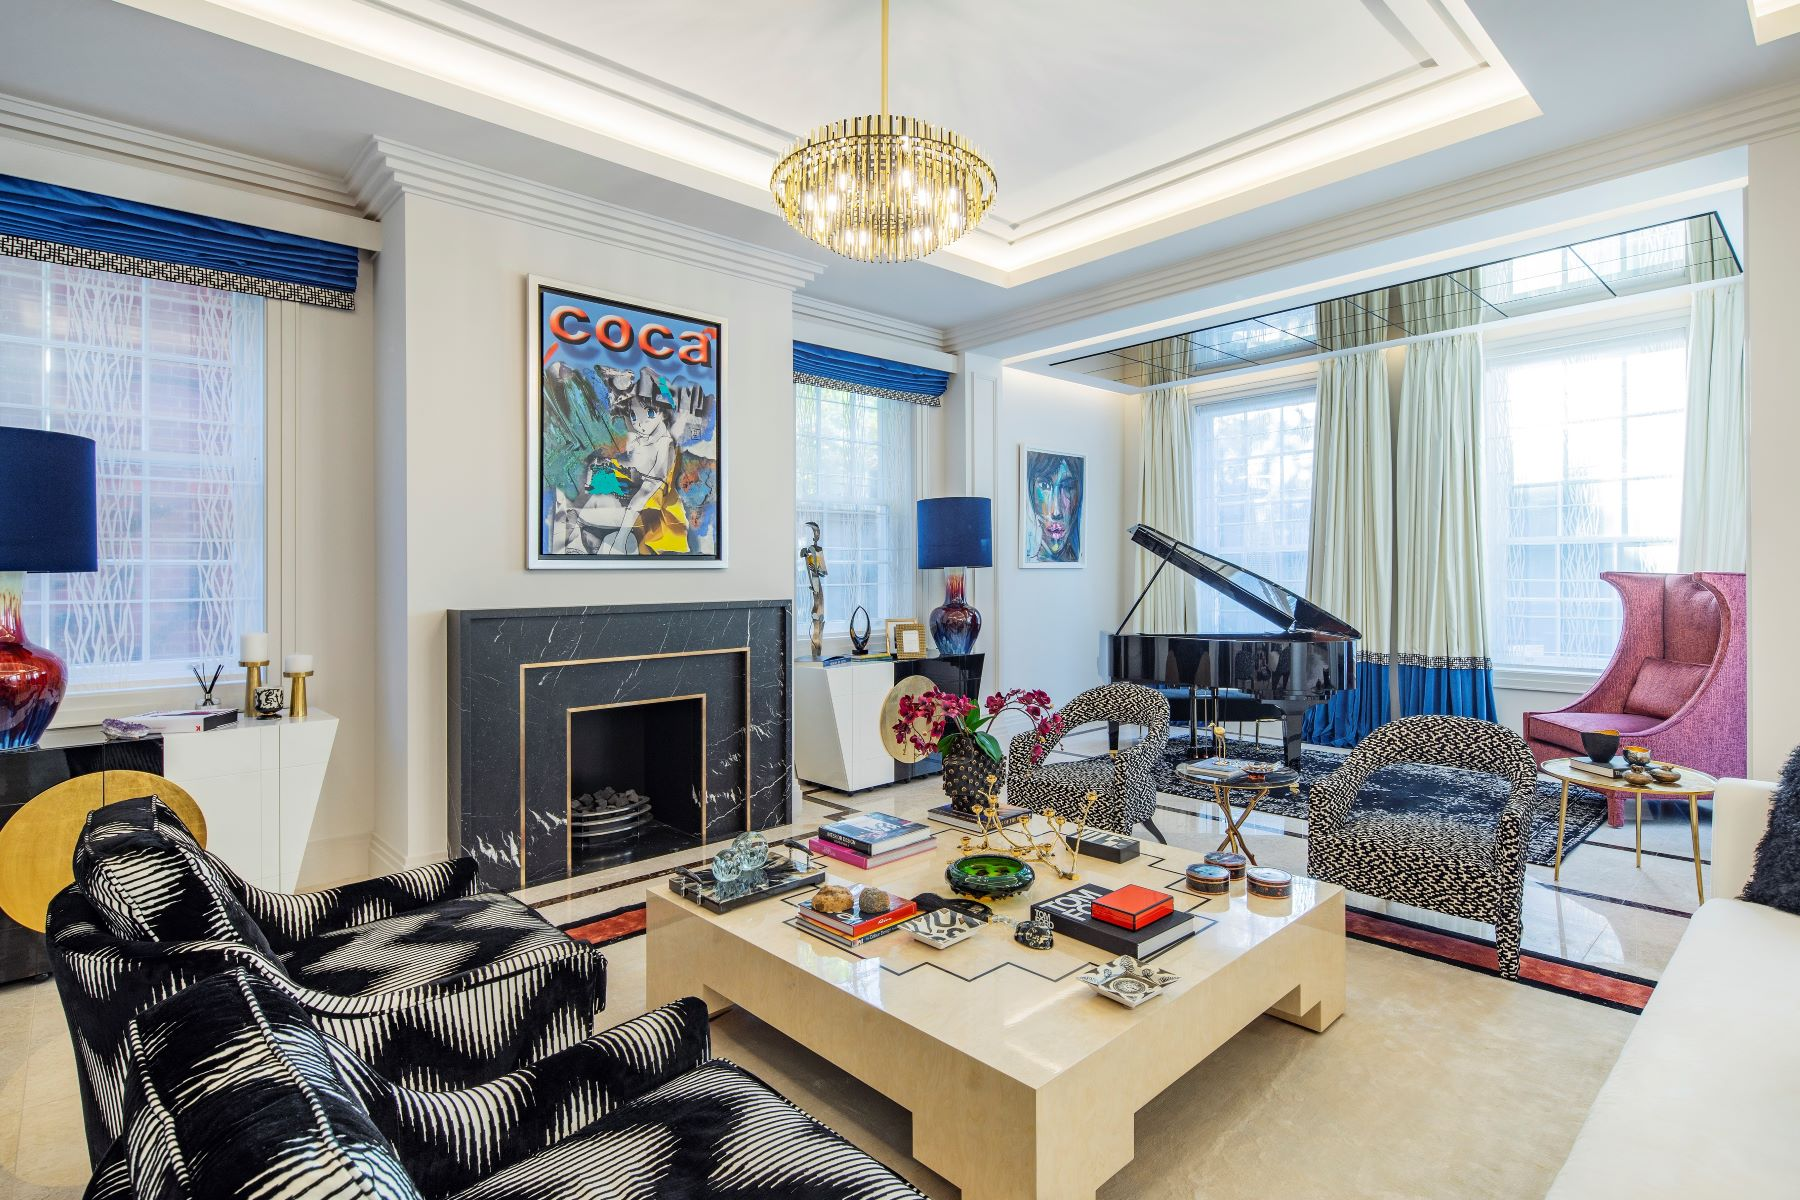 Additional photo for property listing at Avenue Road,St John's Wood, NW8 87 Avenue Road, St. John's Wood London, Anh Quốc NW8 6JD Vương Quốc Anh